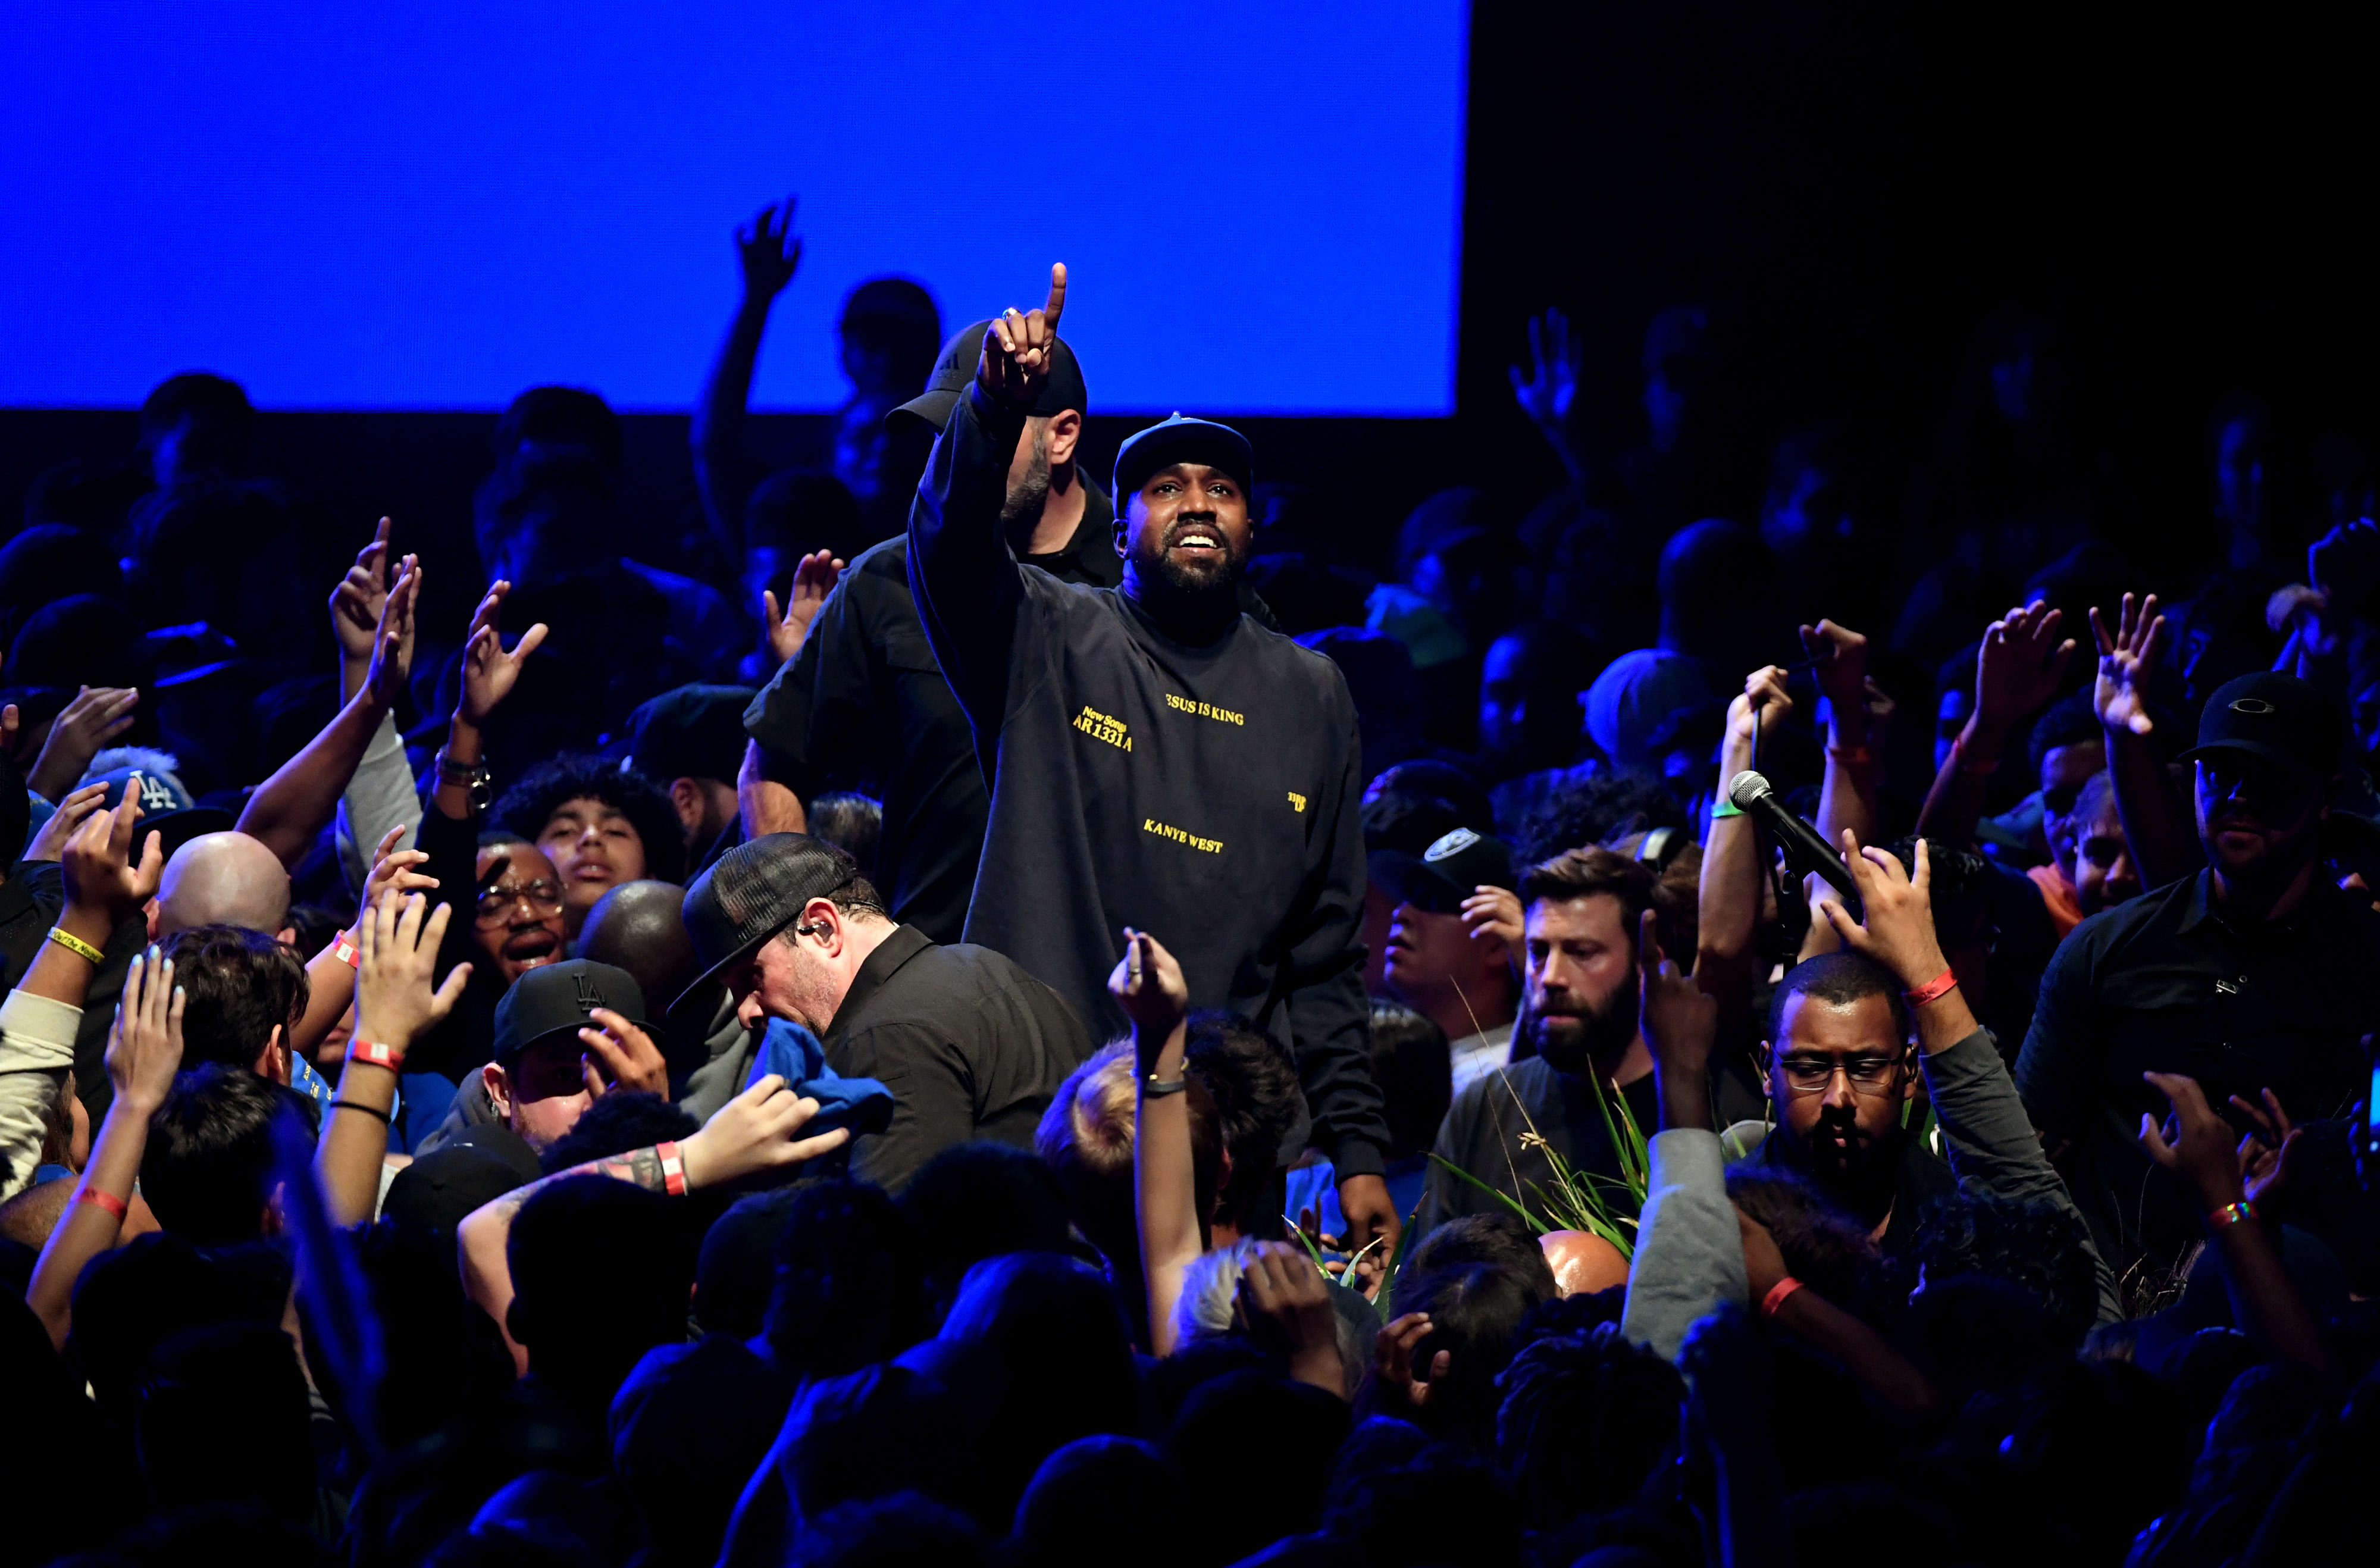 Rapper Kanye West performs amid a crowd of fans at a performance in Southern California.